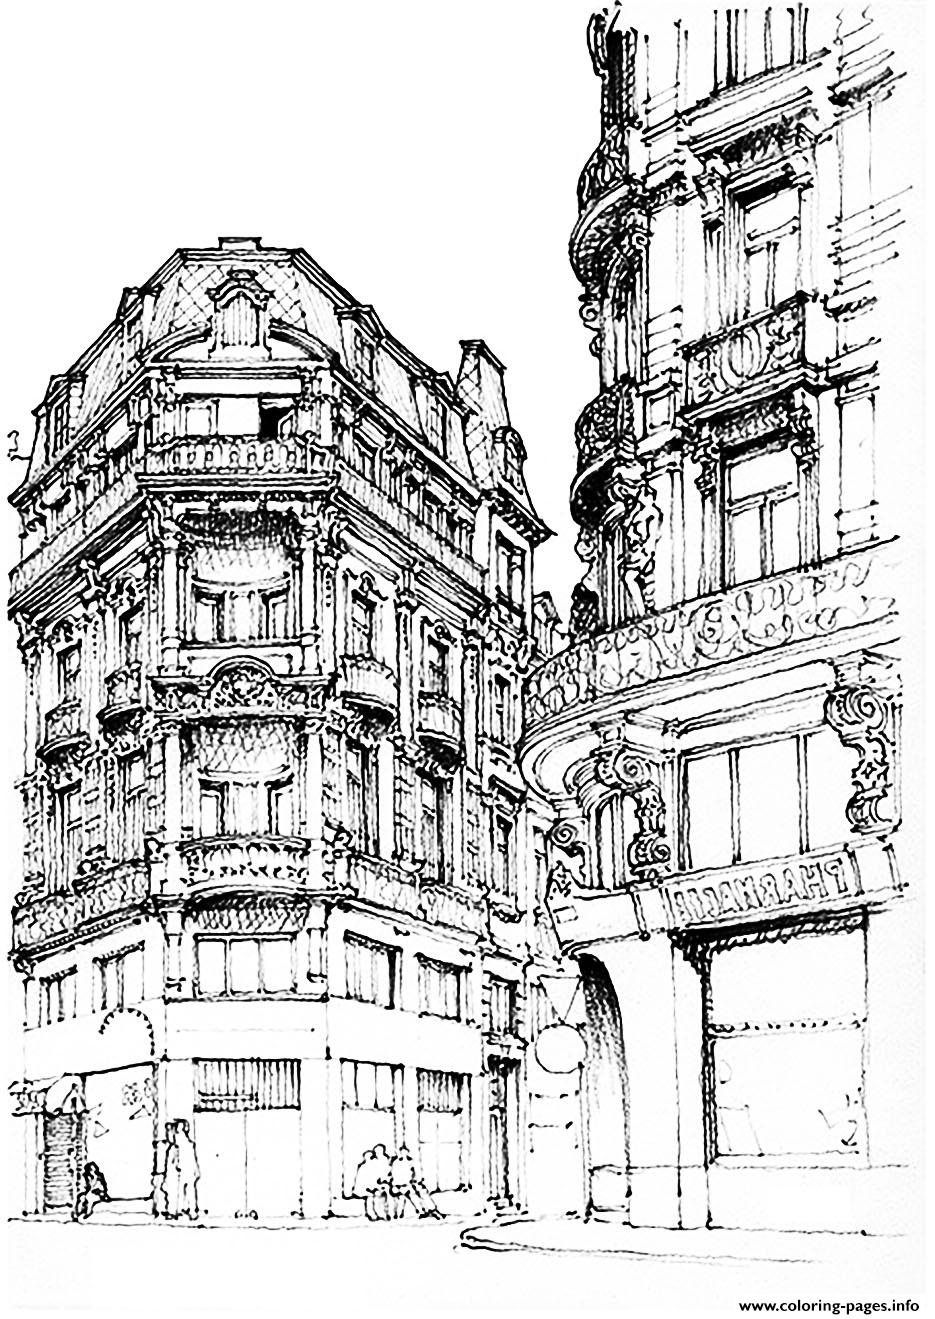 coloring pages street - photo#37